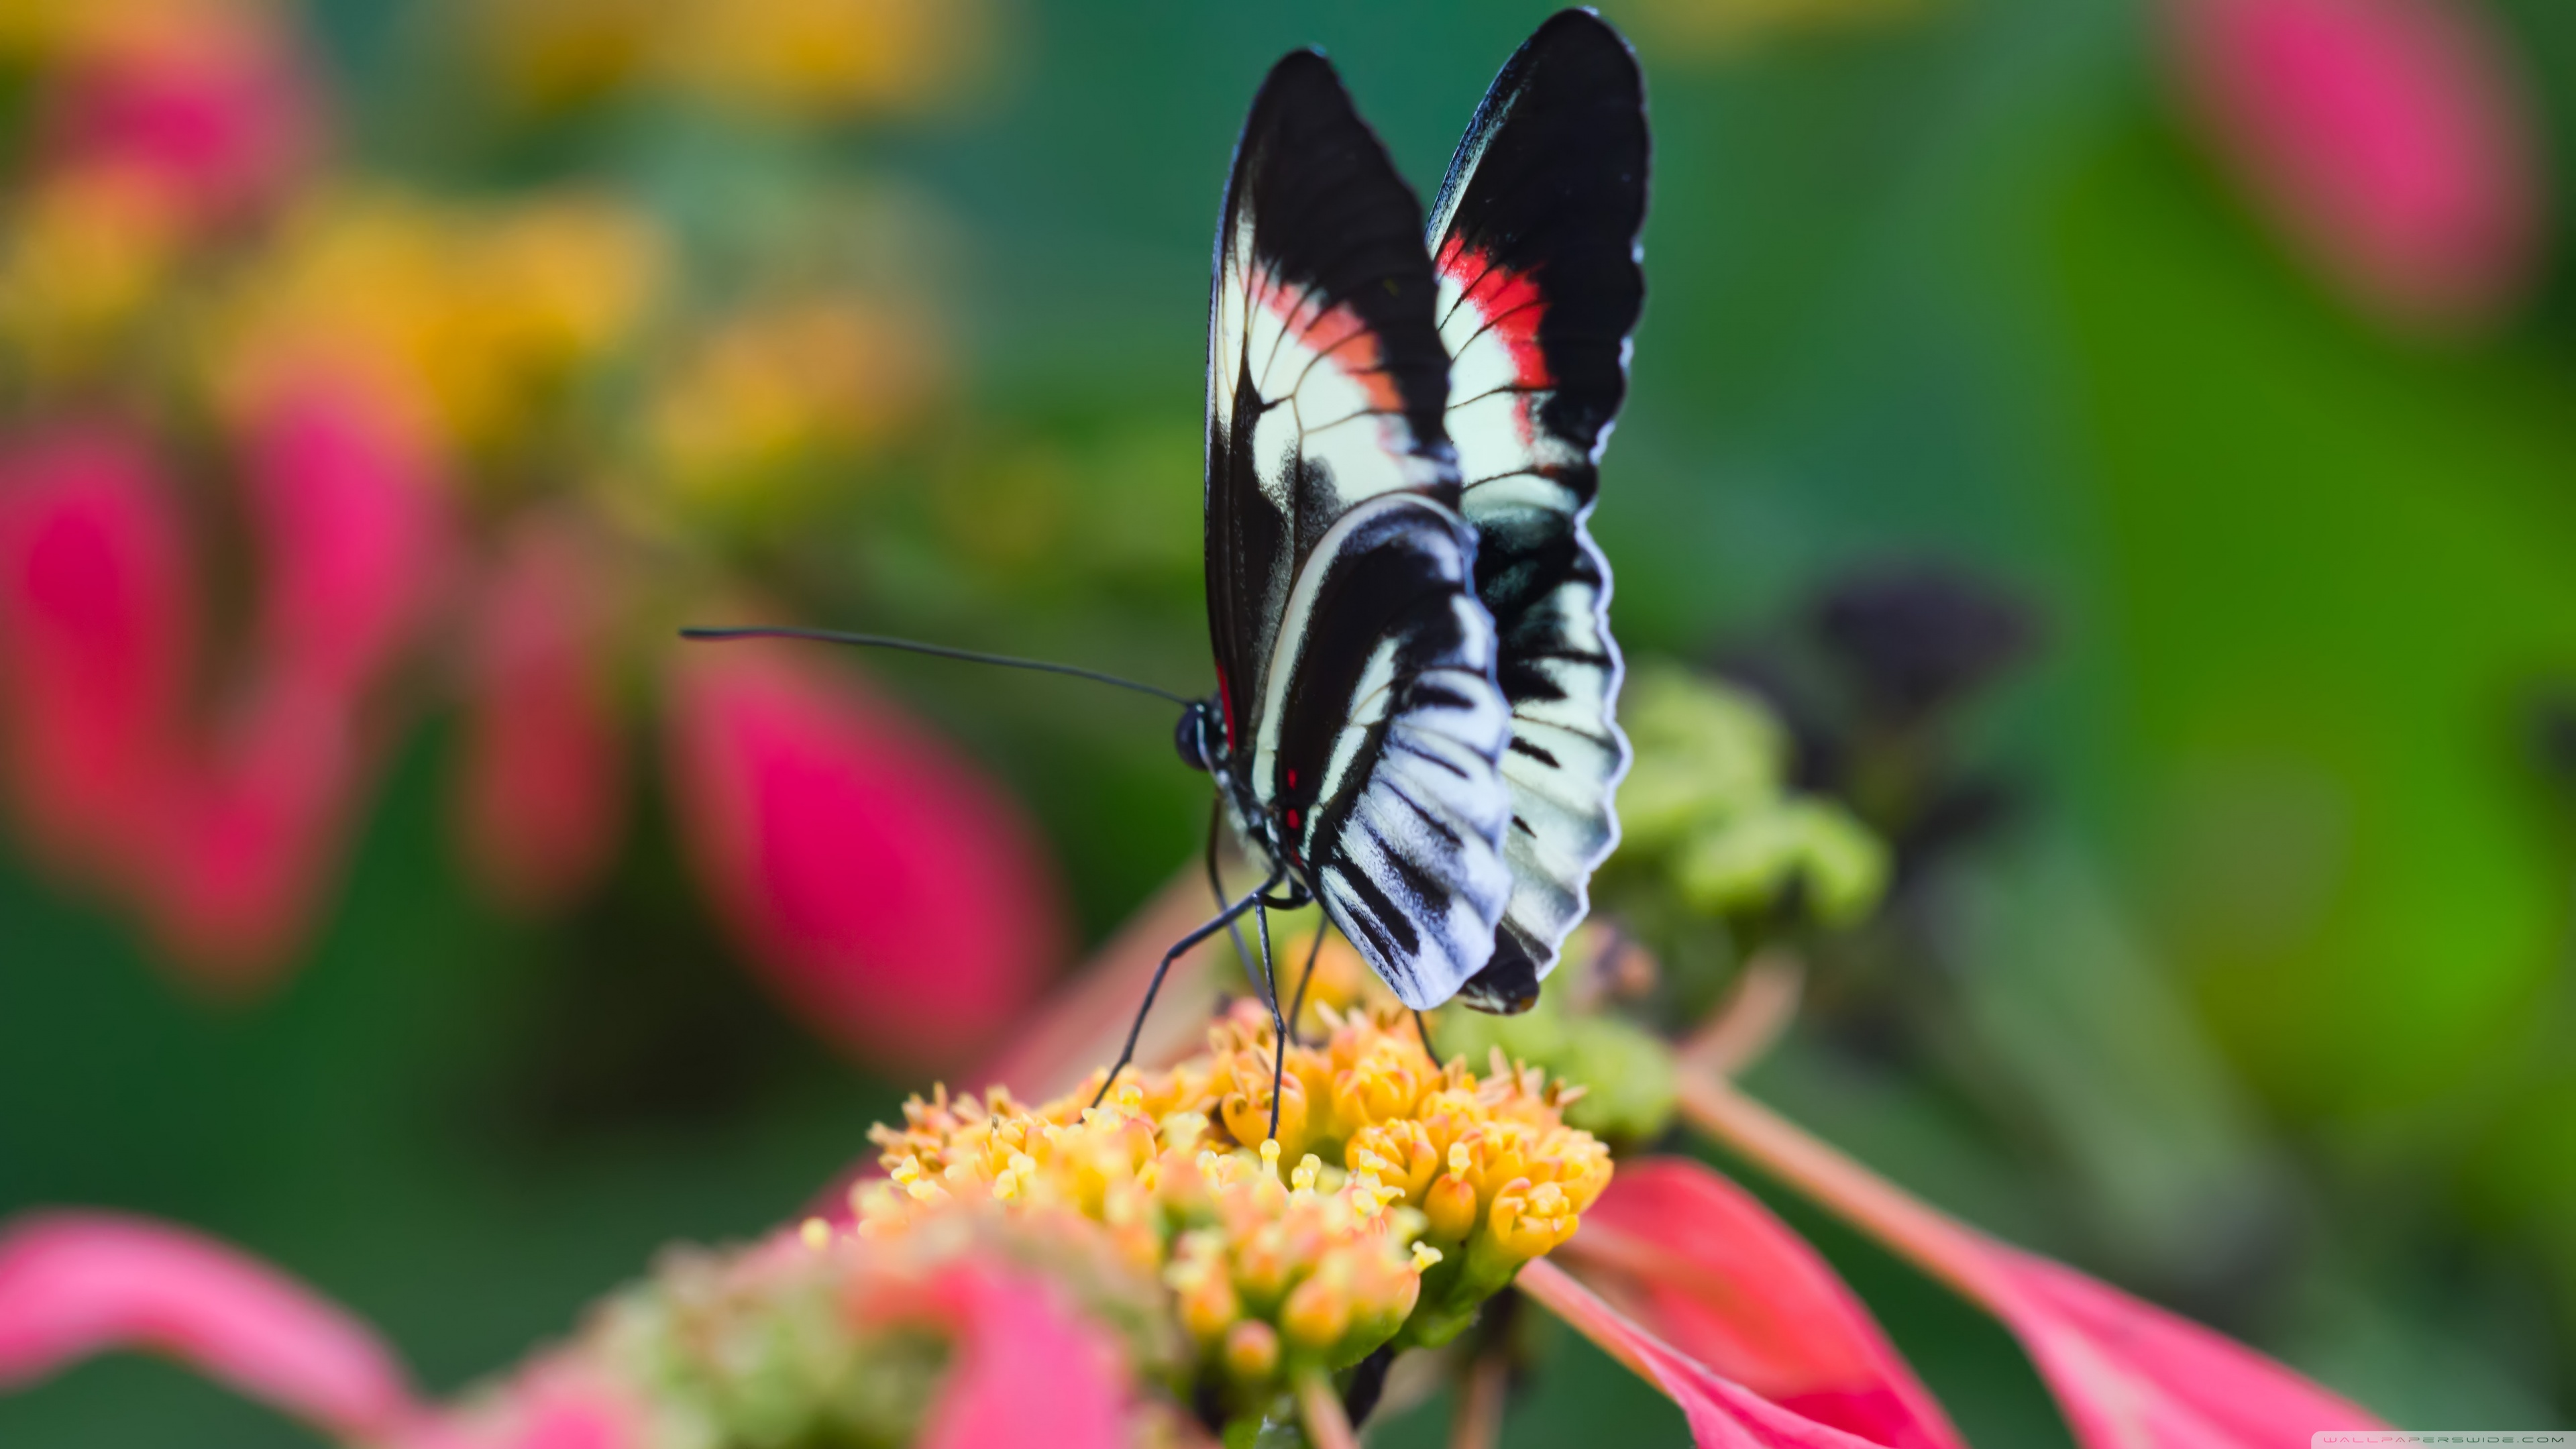 Beautiful Butterfly On Flower Macro Wallpapers - 4k Ultra Hd Butterfly , HD Wallpaper & Backgrounds